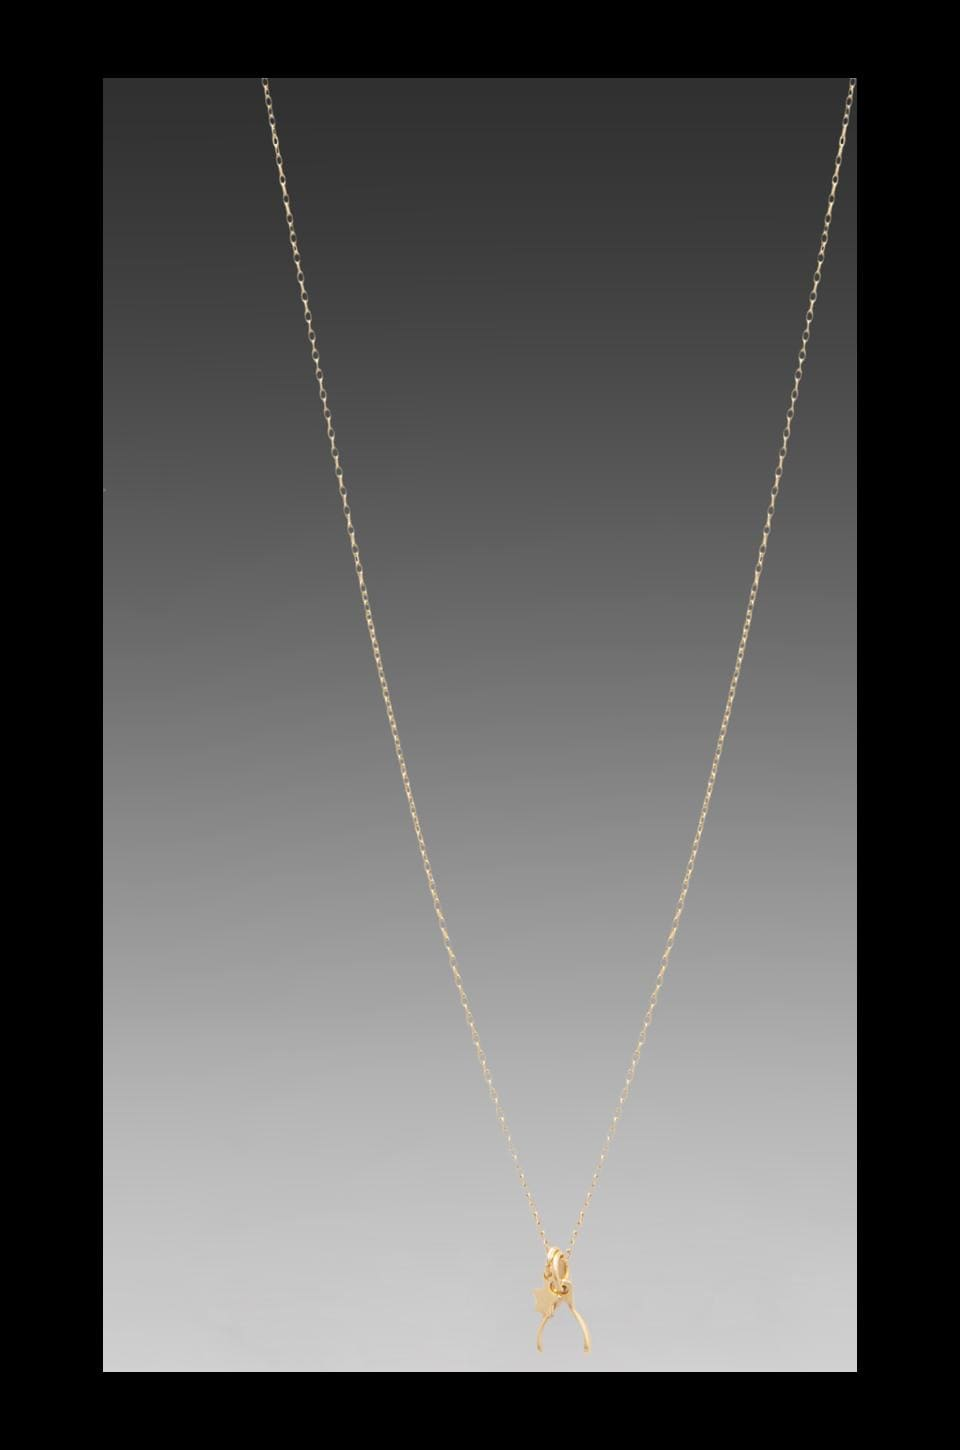 Bing Bang Wishbone Necklace in Yellow Gold